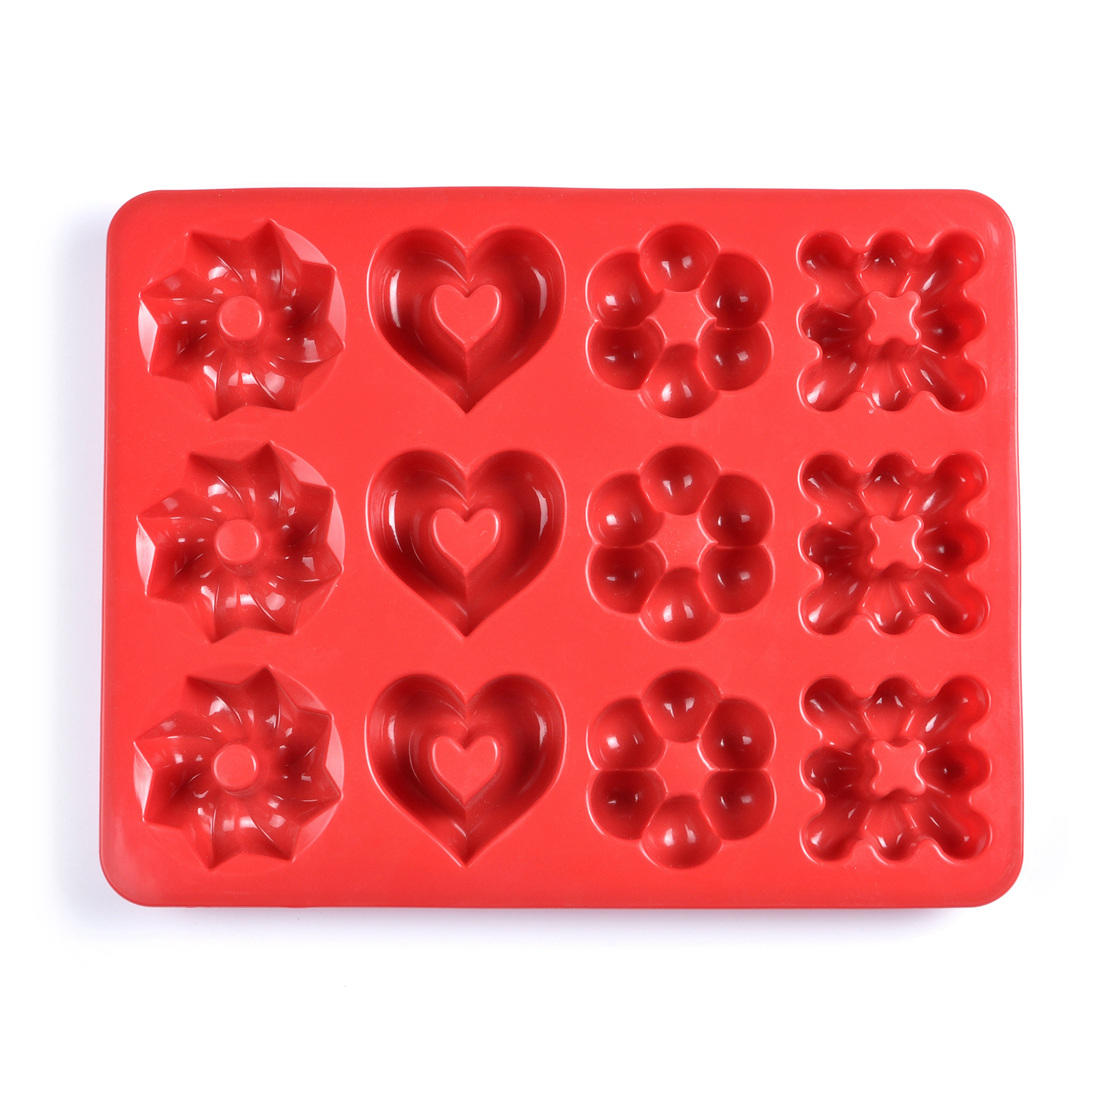 Best Silicone baking mold Dongguan for sale for kids-3